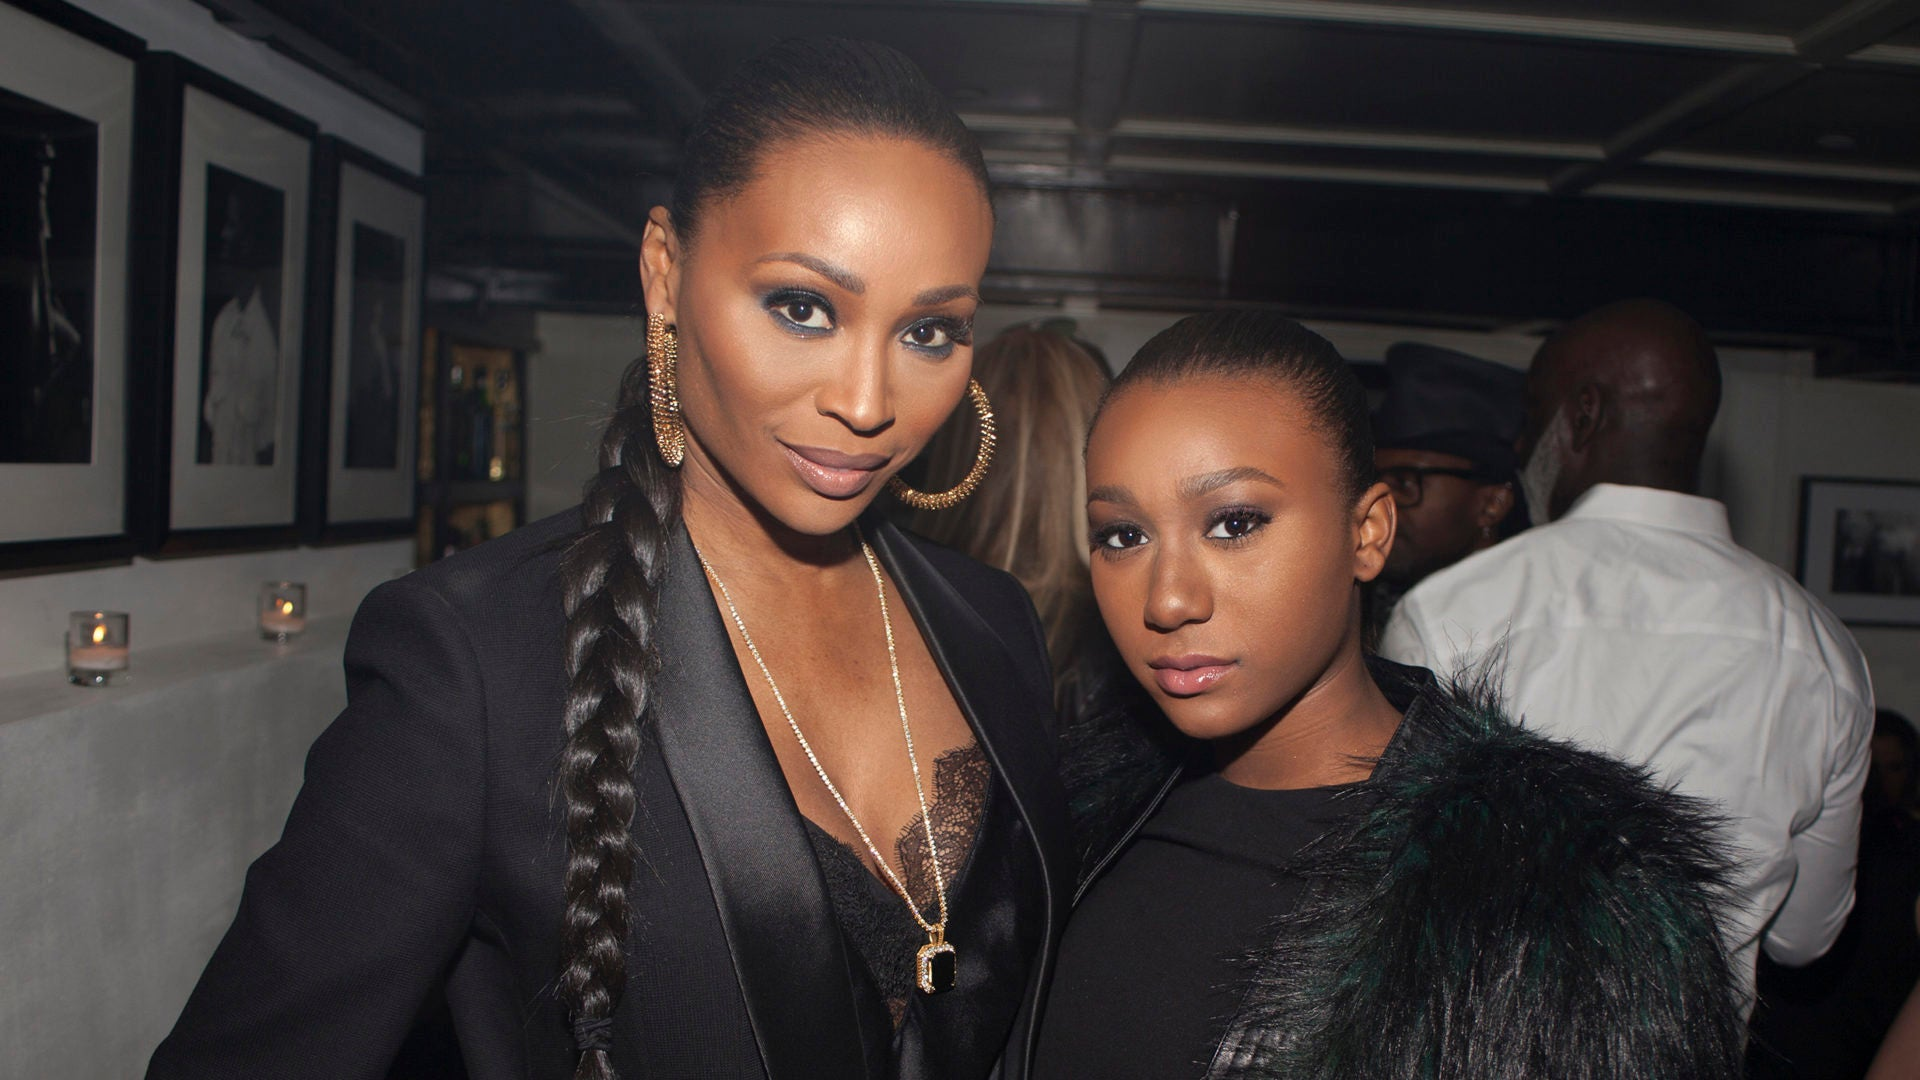 Cynthia Bailey Shares Gorgeous Photos With Her Daughter, Noelle Robinson